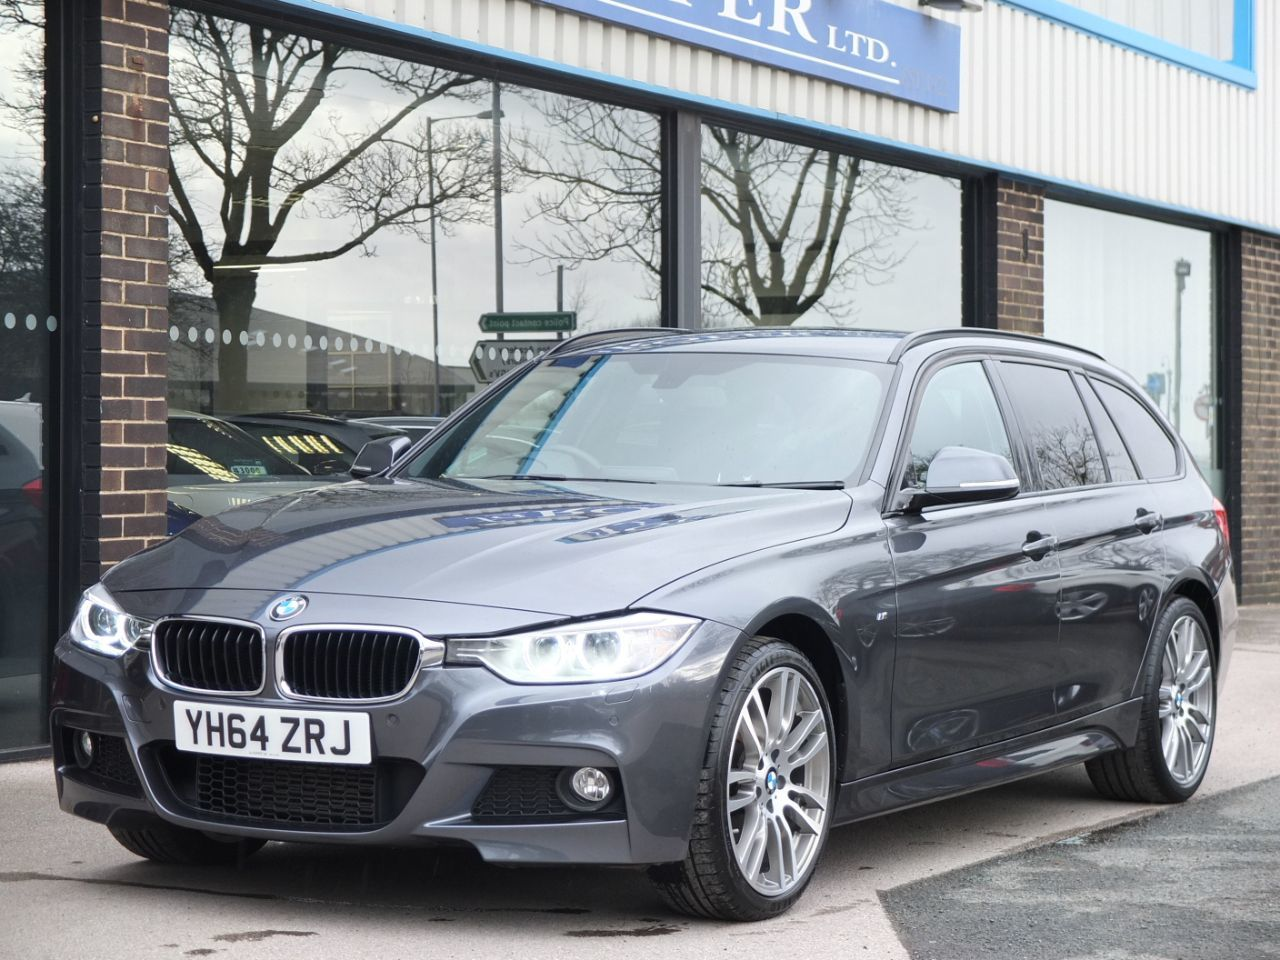 BMW 3 Series 2.0 320d xDrive M Sport Touring Auto Estate Diesel Mineral Grey MetallicBMW 3 Series 2.0 320d xDrive M Sport Touring Auto Estate Diesel Mineral Grey Metallic at fa Roper Ltd Bradford